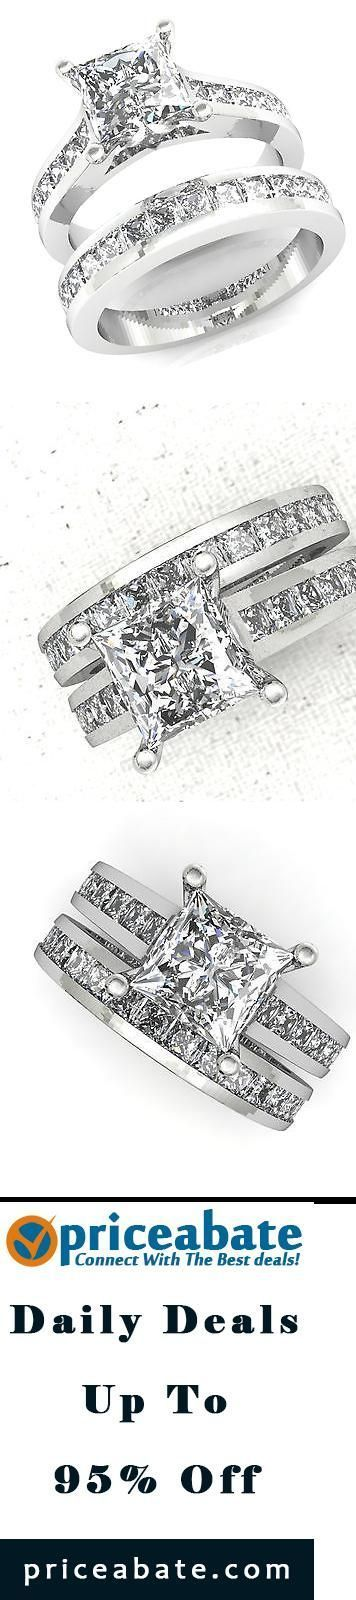 #priceabatedeals  3.00 CT PRINCESS CUT ENGAGEMENT RING  AND WEDDING BAND IN 14 KT SOLID WHITE GOLD - Buy This Item Now For Only: $249.99